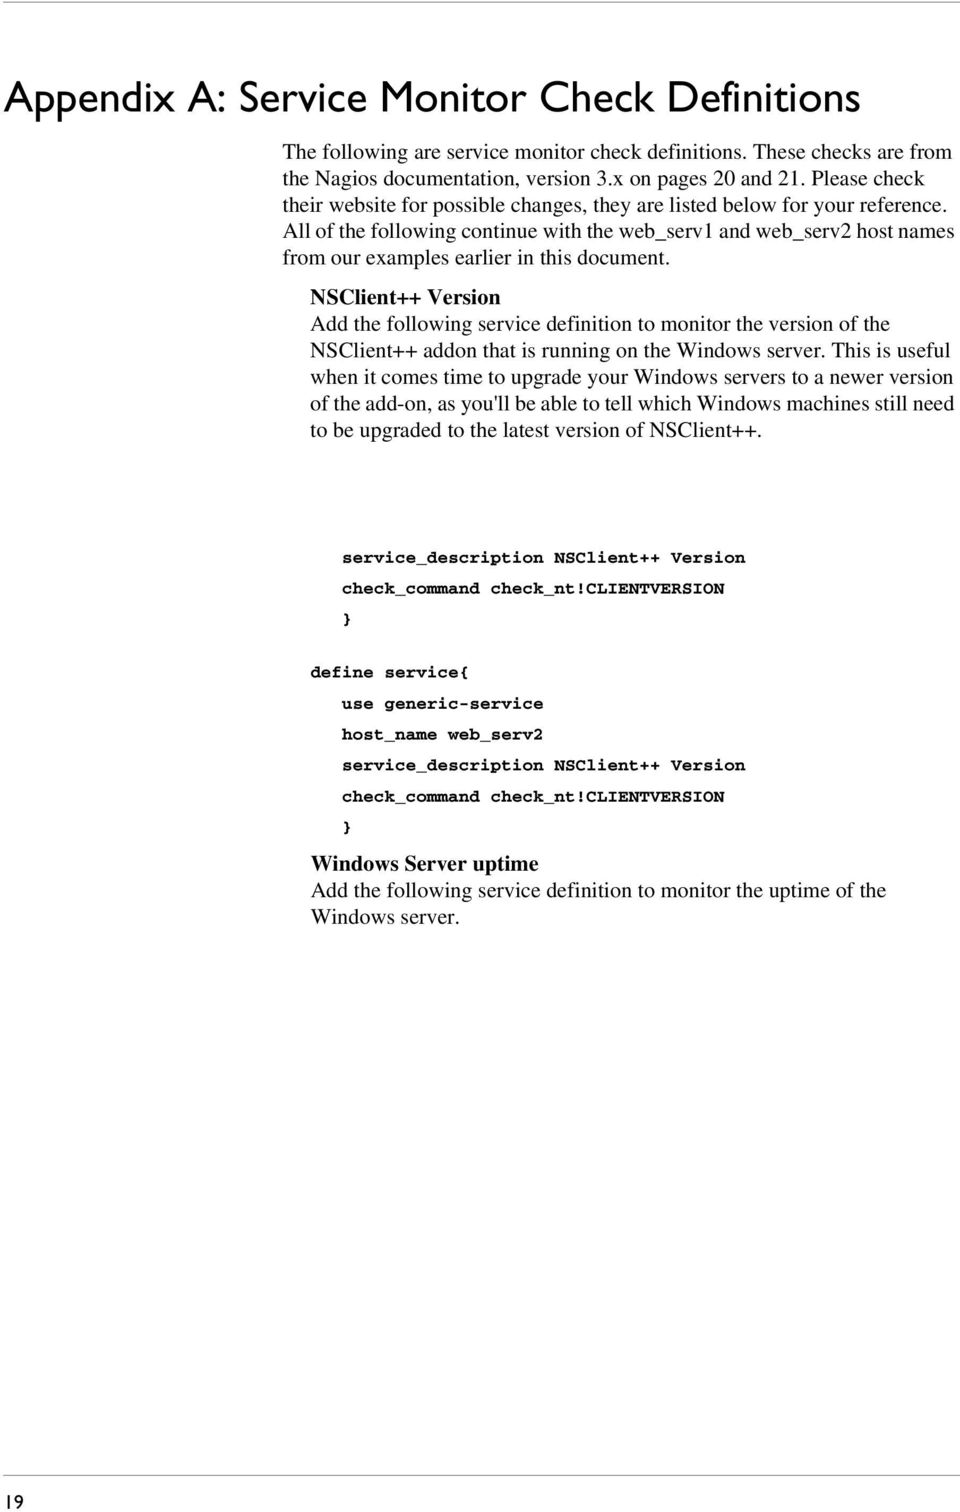 All of the following continue with the web_serv1 and web_serv2 host names from our examples earlier in this document.